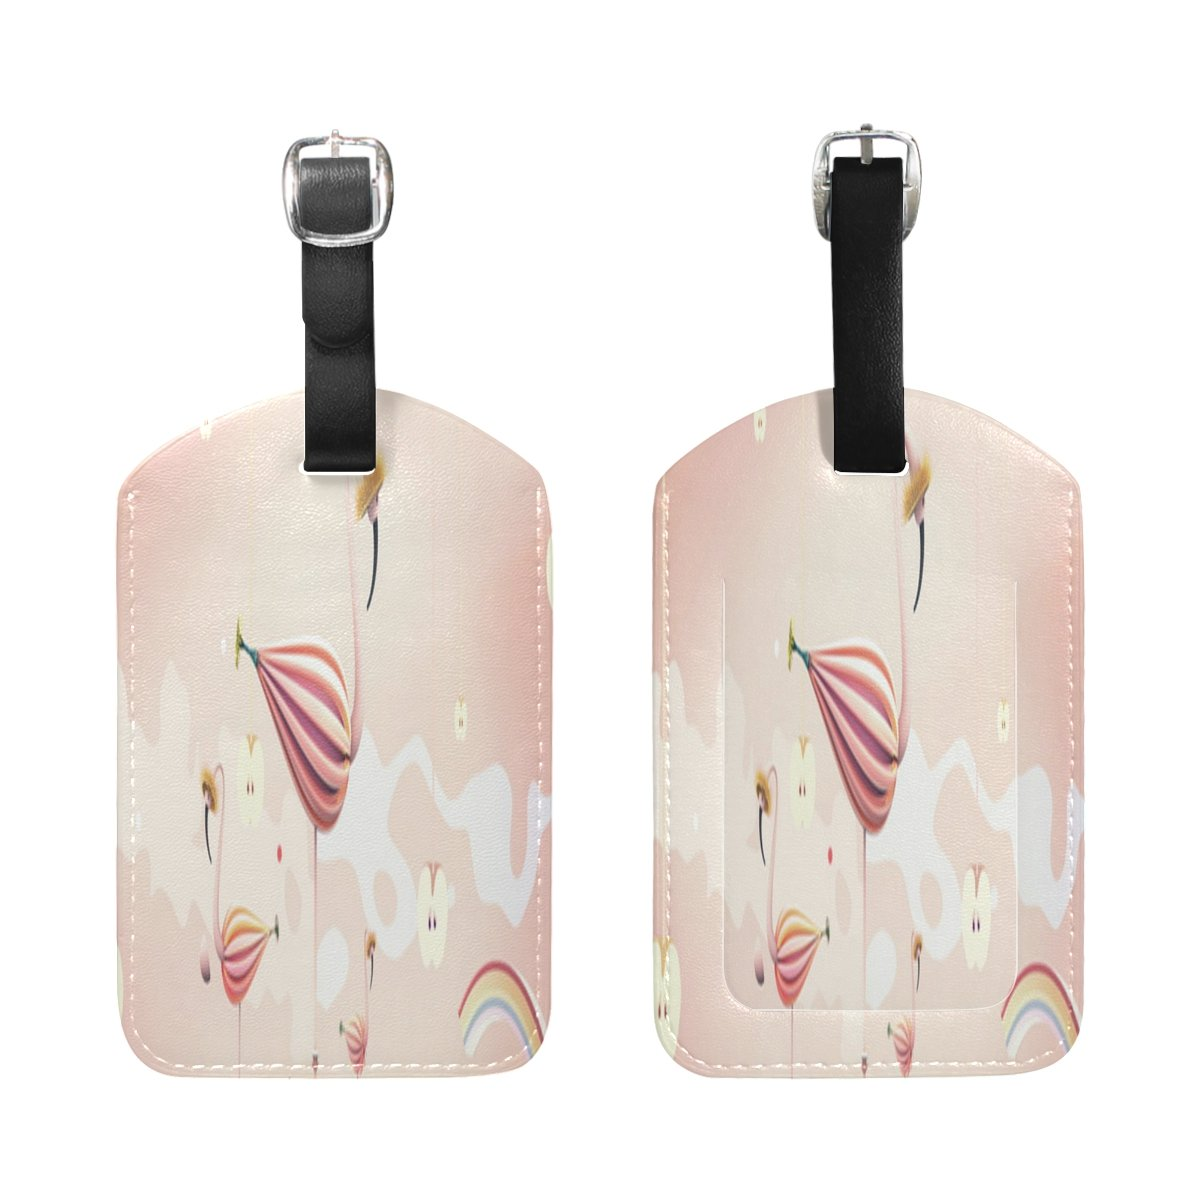 Saobao Travel Luggage Tag Flamingos And Rainbows PU Leather Baggage Travel ID